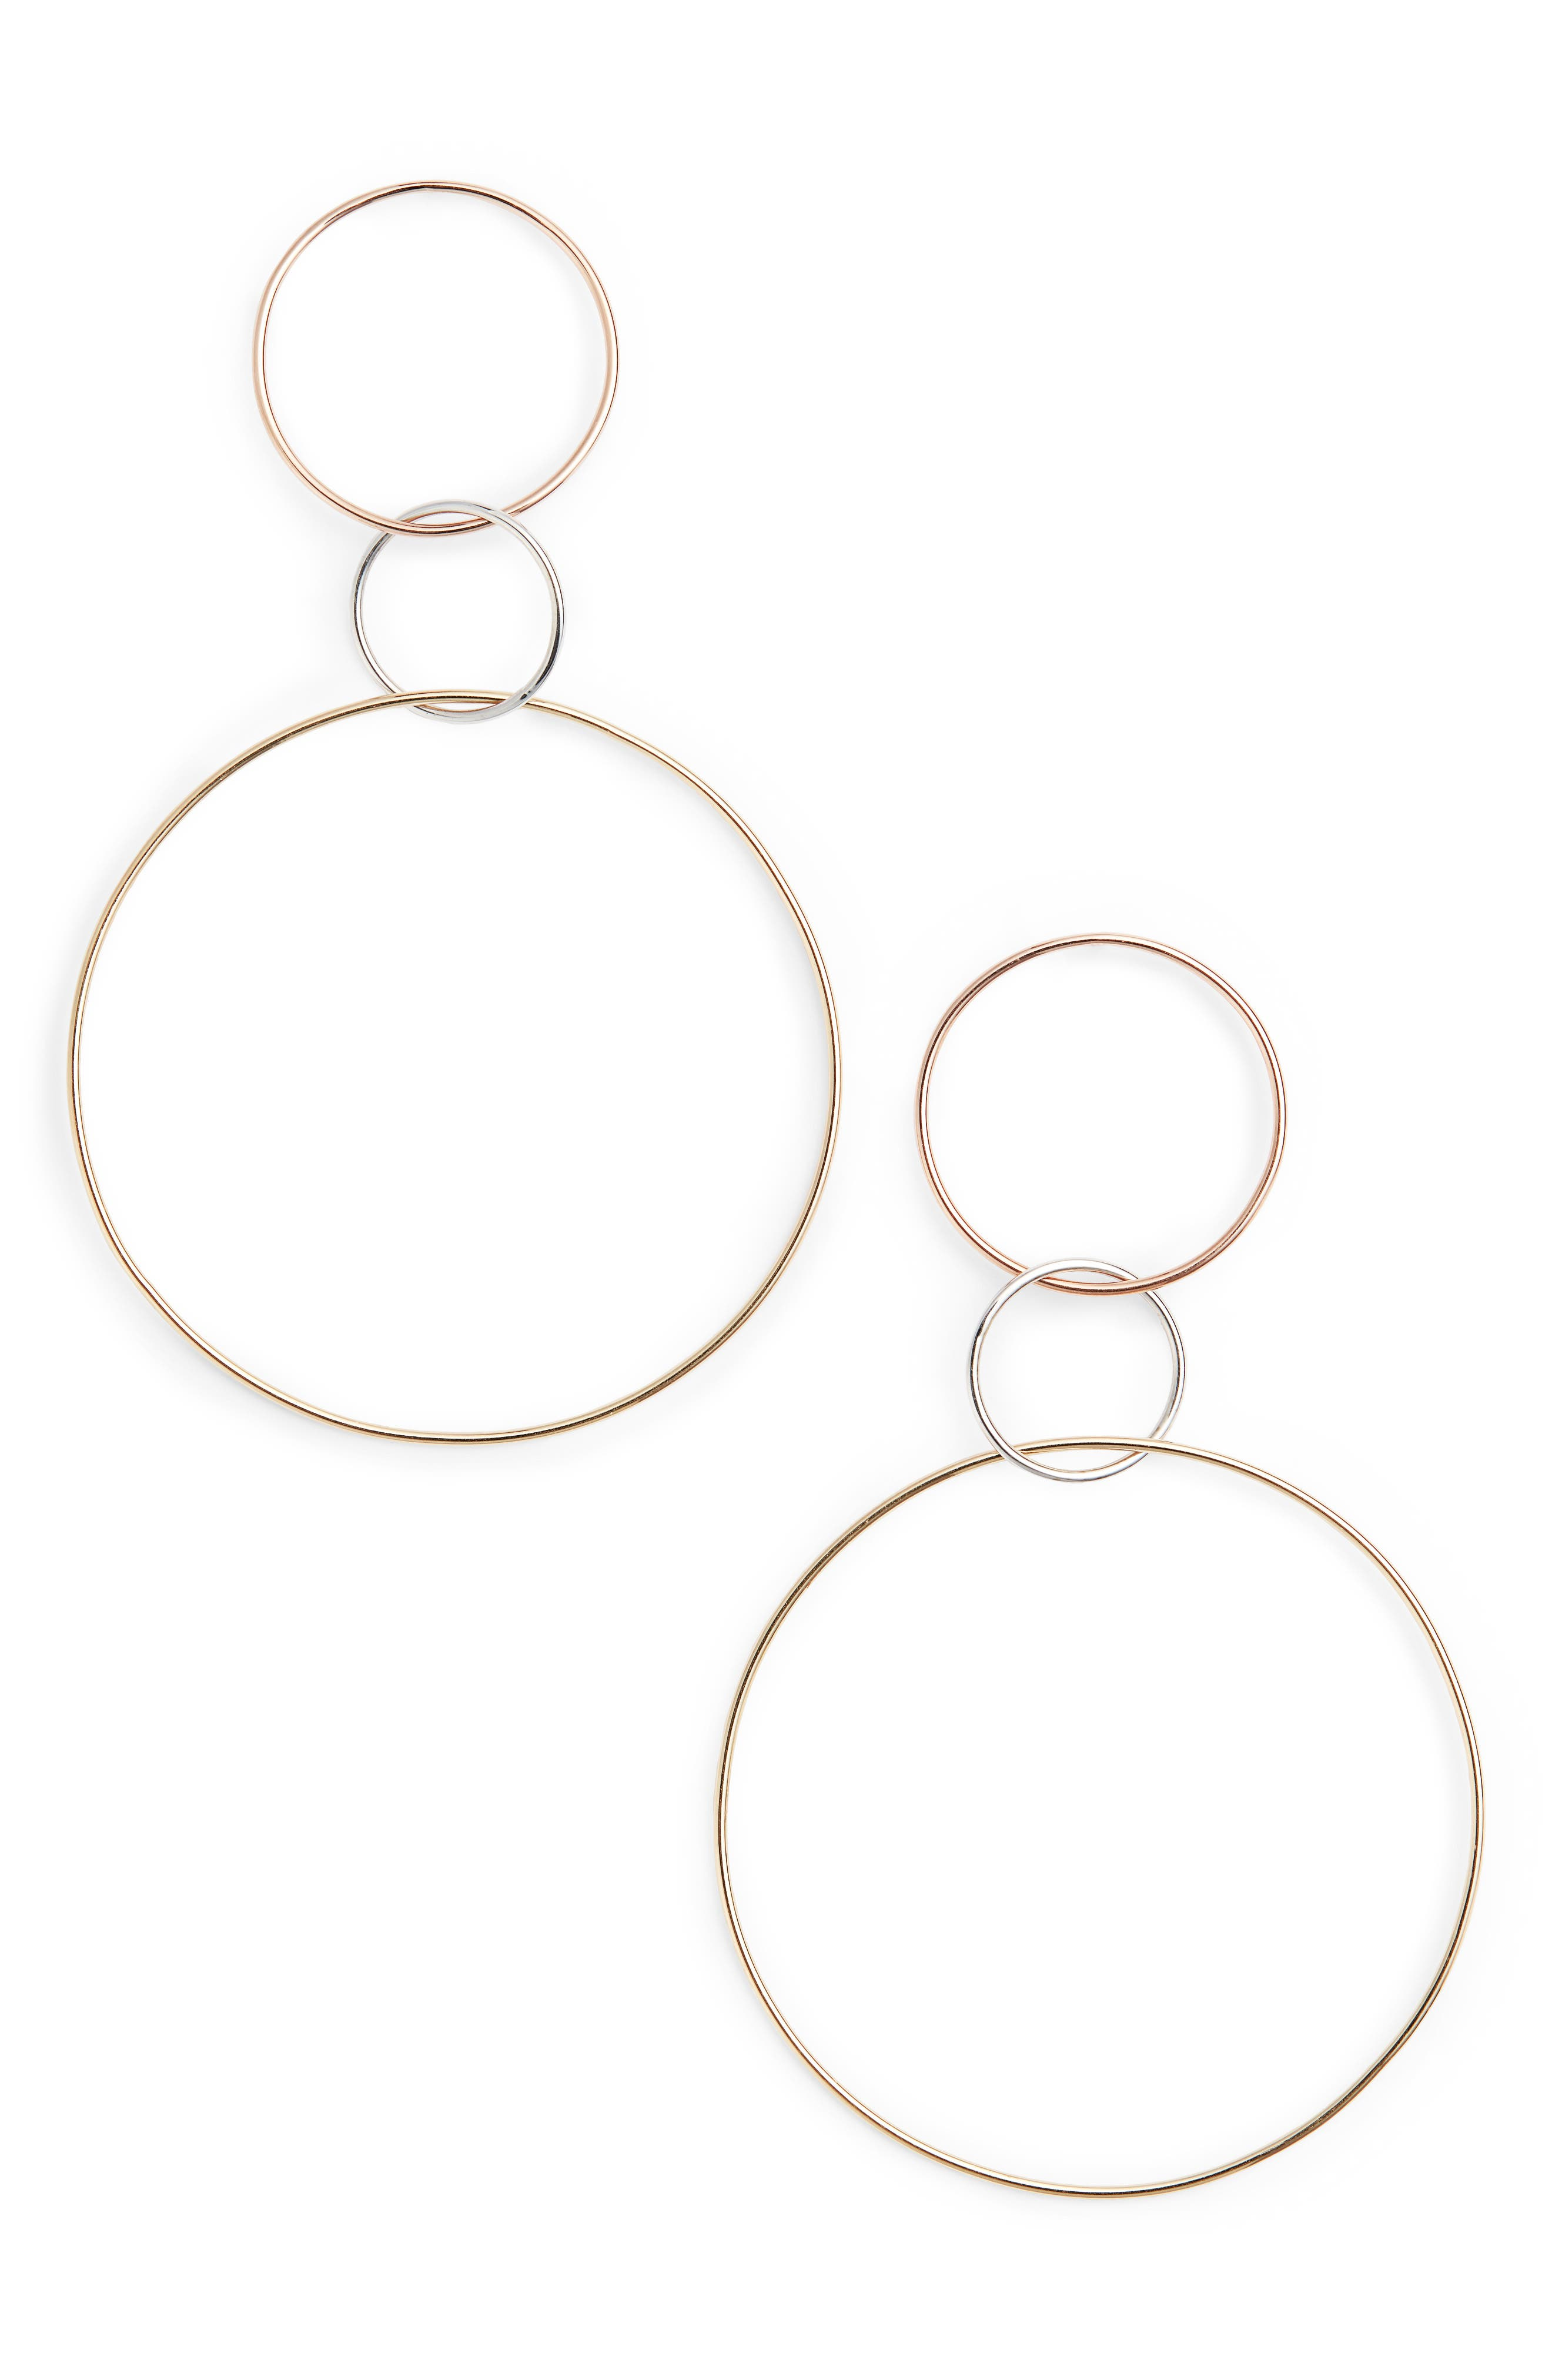 Tri-Tone Three Hoop Wire Drop Earrings,                         Main,                         color, Three Tone Mix